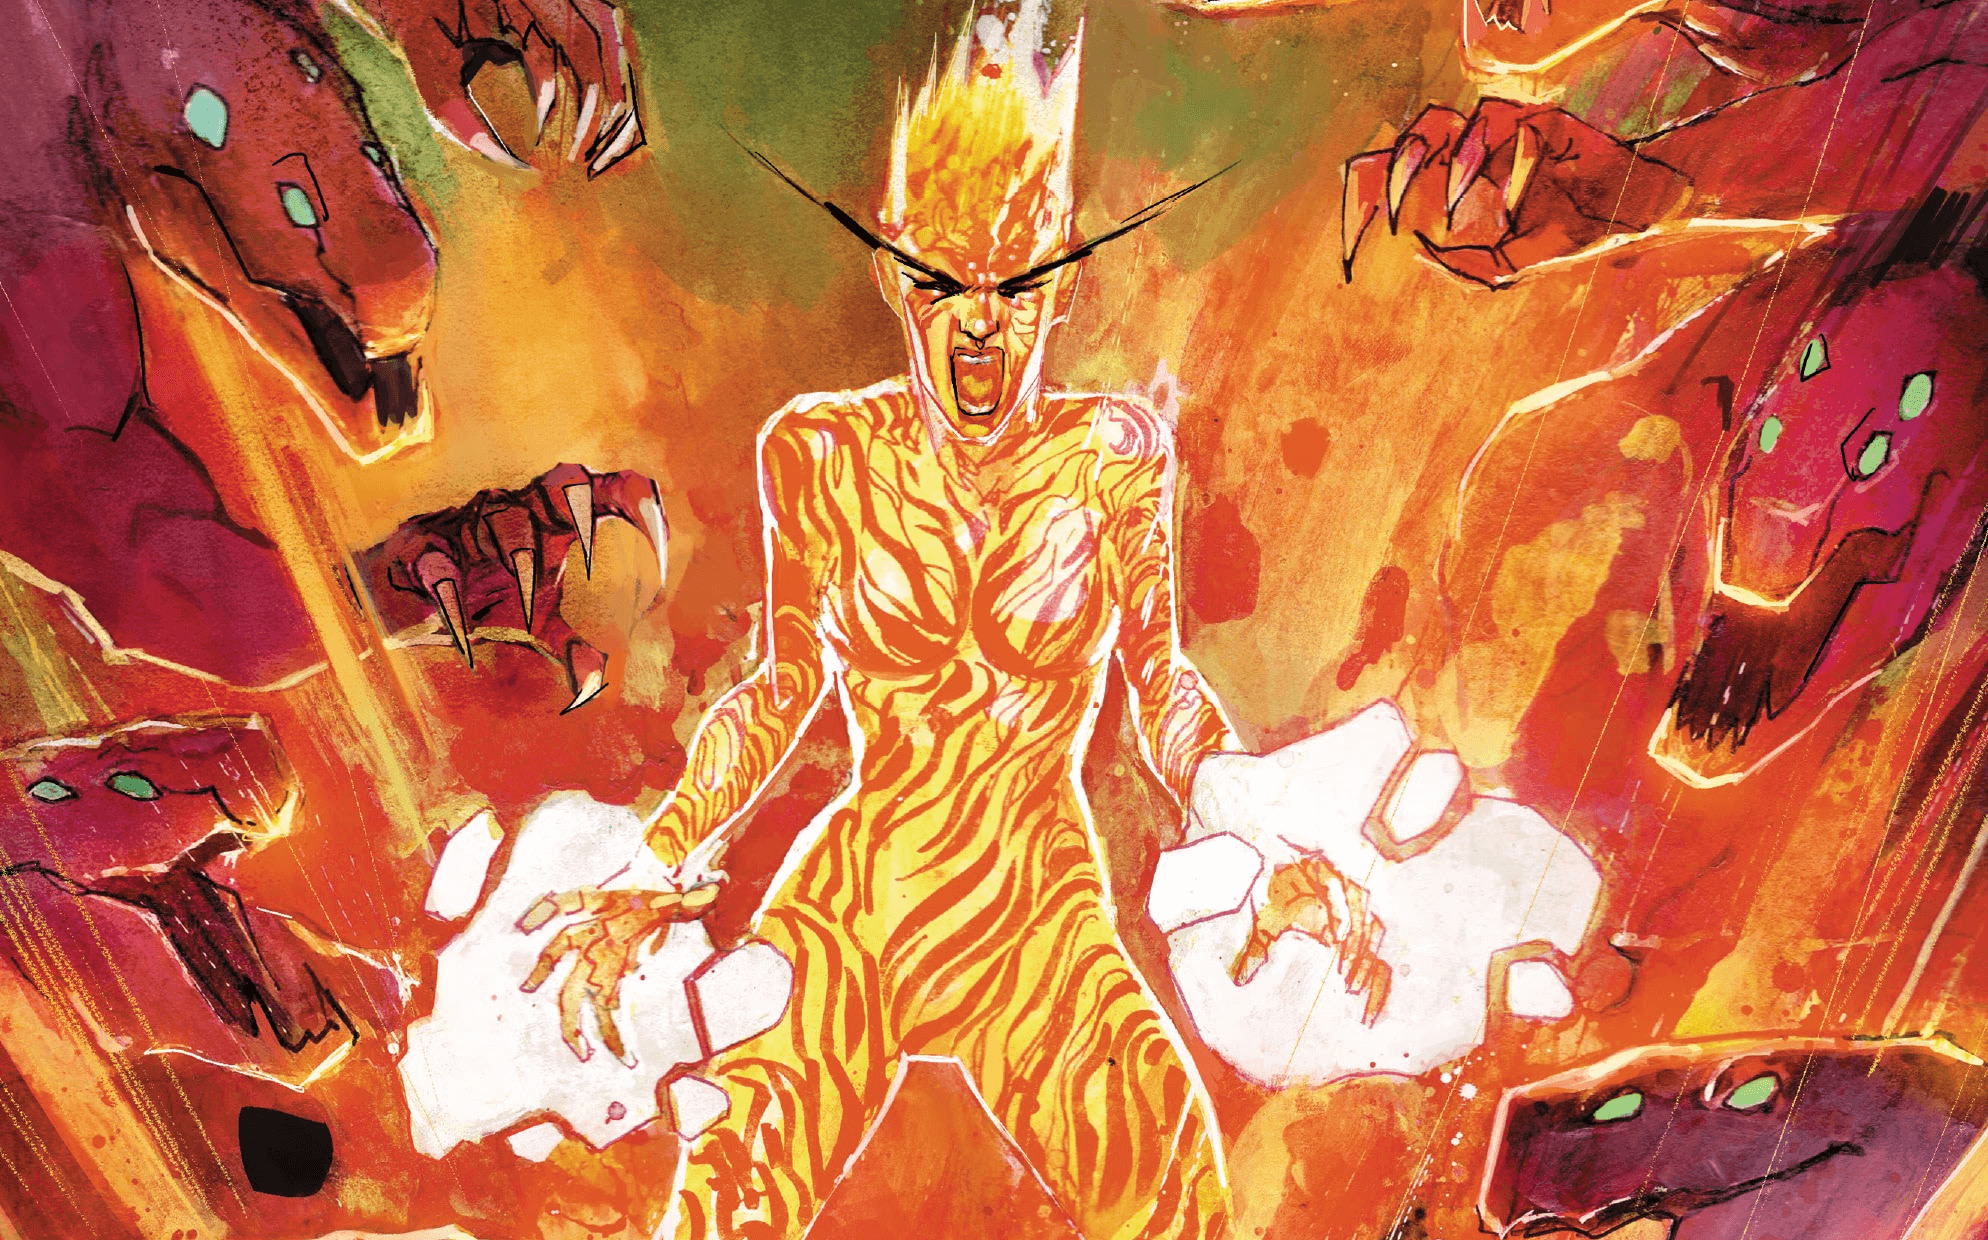 Magma keeps a horde of monsters back with her magma powers on this cover to New Mutants #8